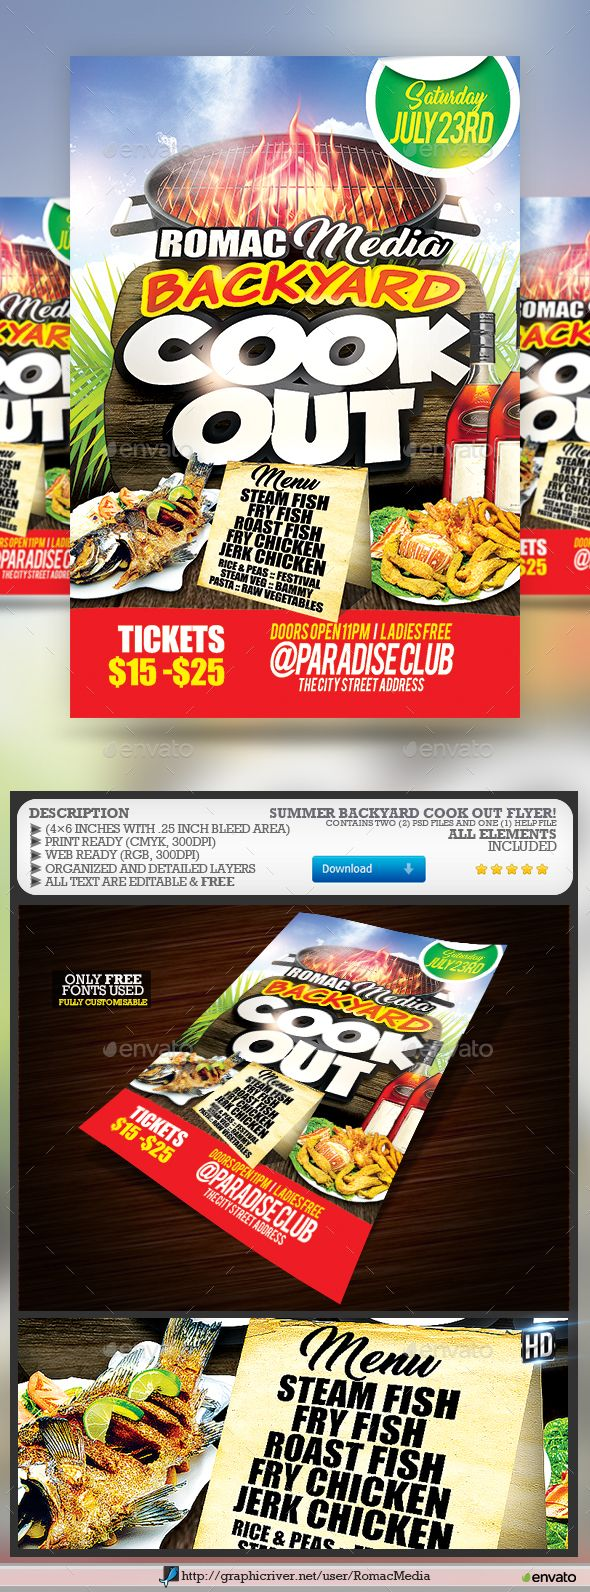 #Backyard #Cook Out Party #Flyer - Events Flyers Download here:  graphicriver.ne...